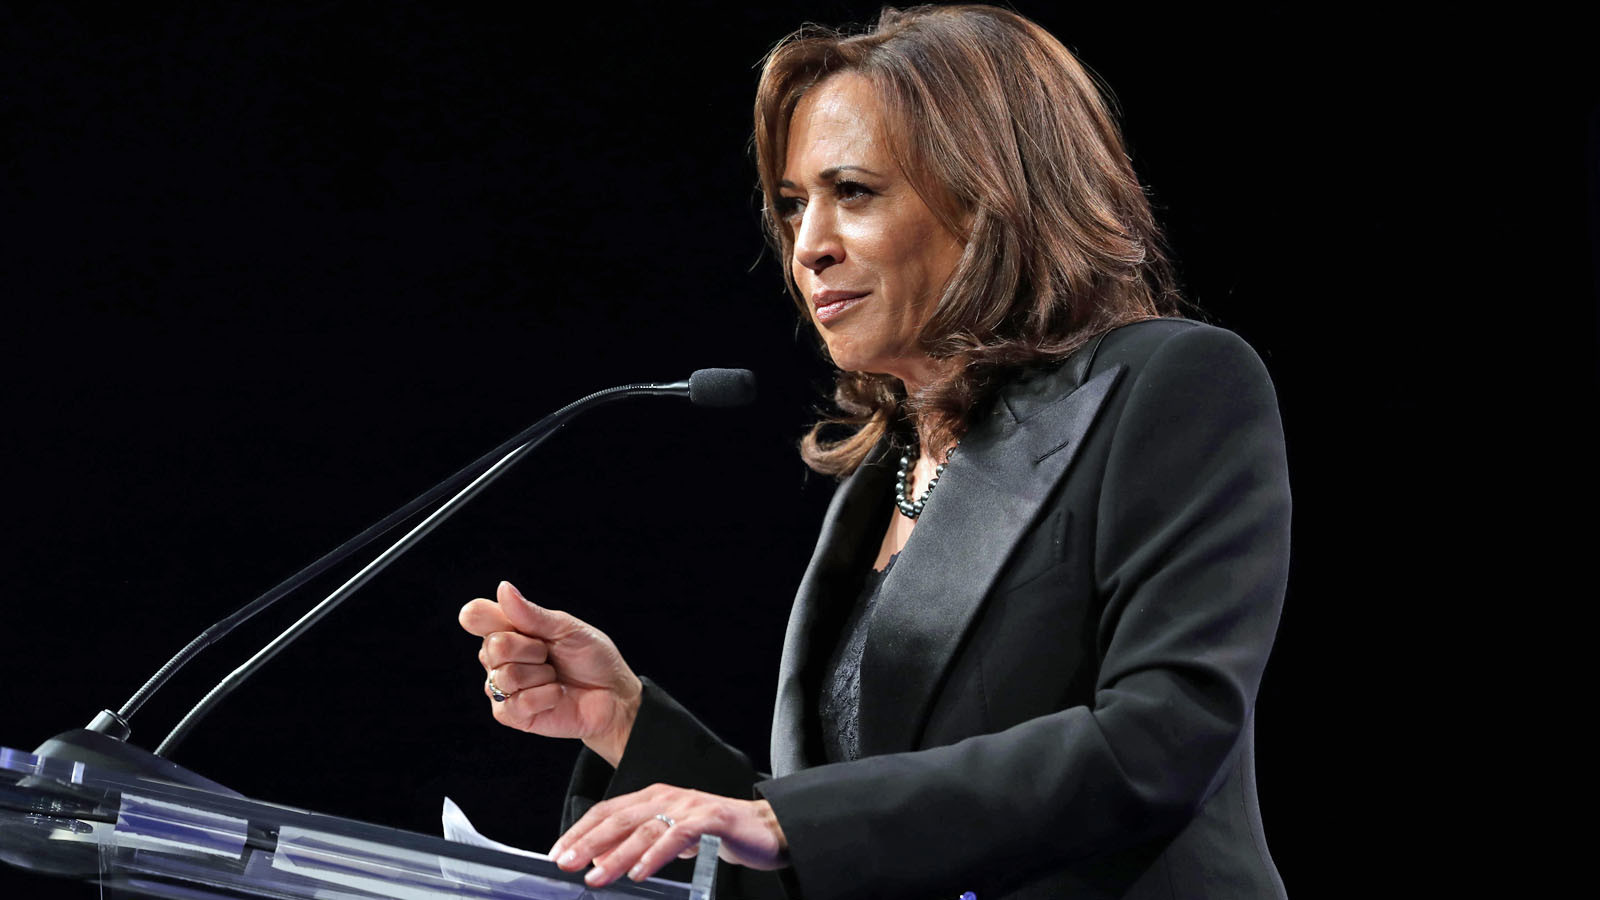 At gay rights gala in L.A., Kamala Harris and Cory Booker stand for equality